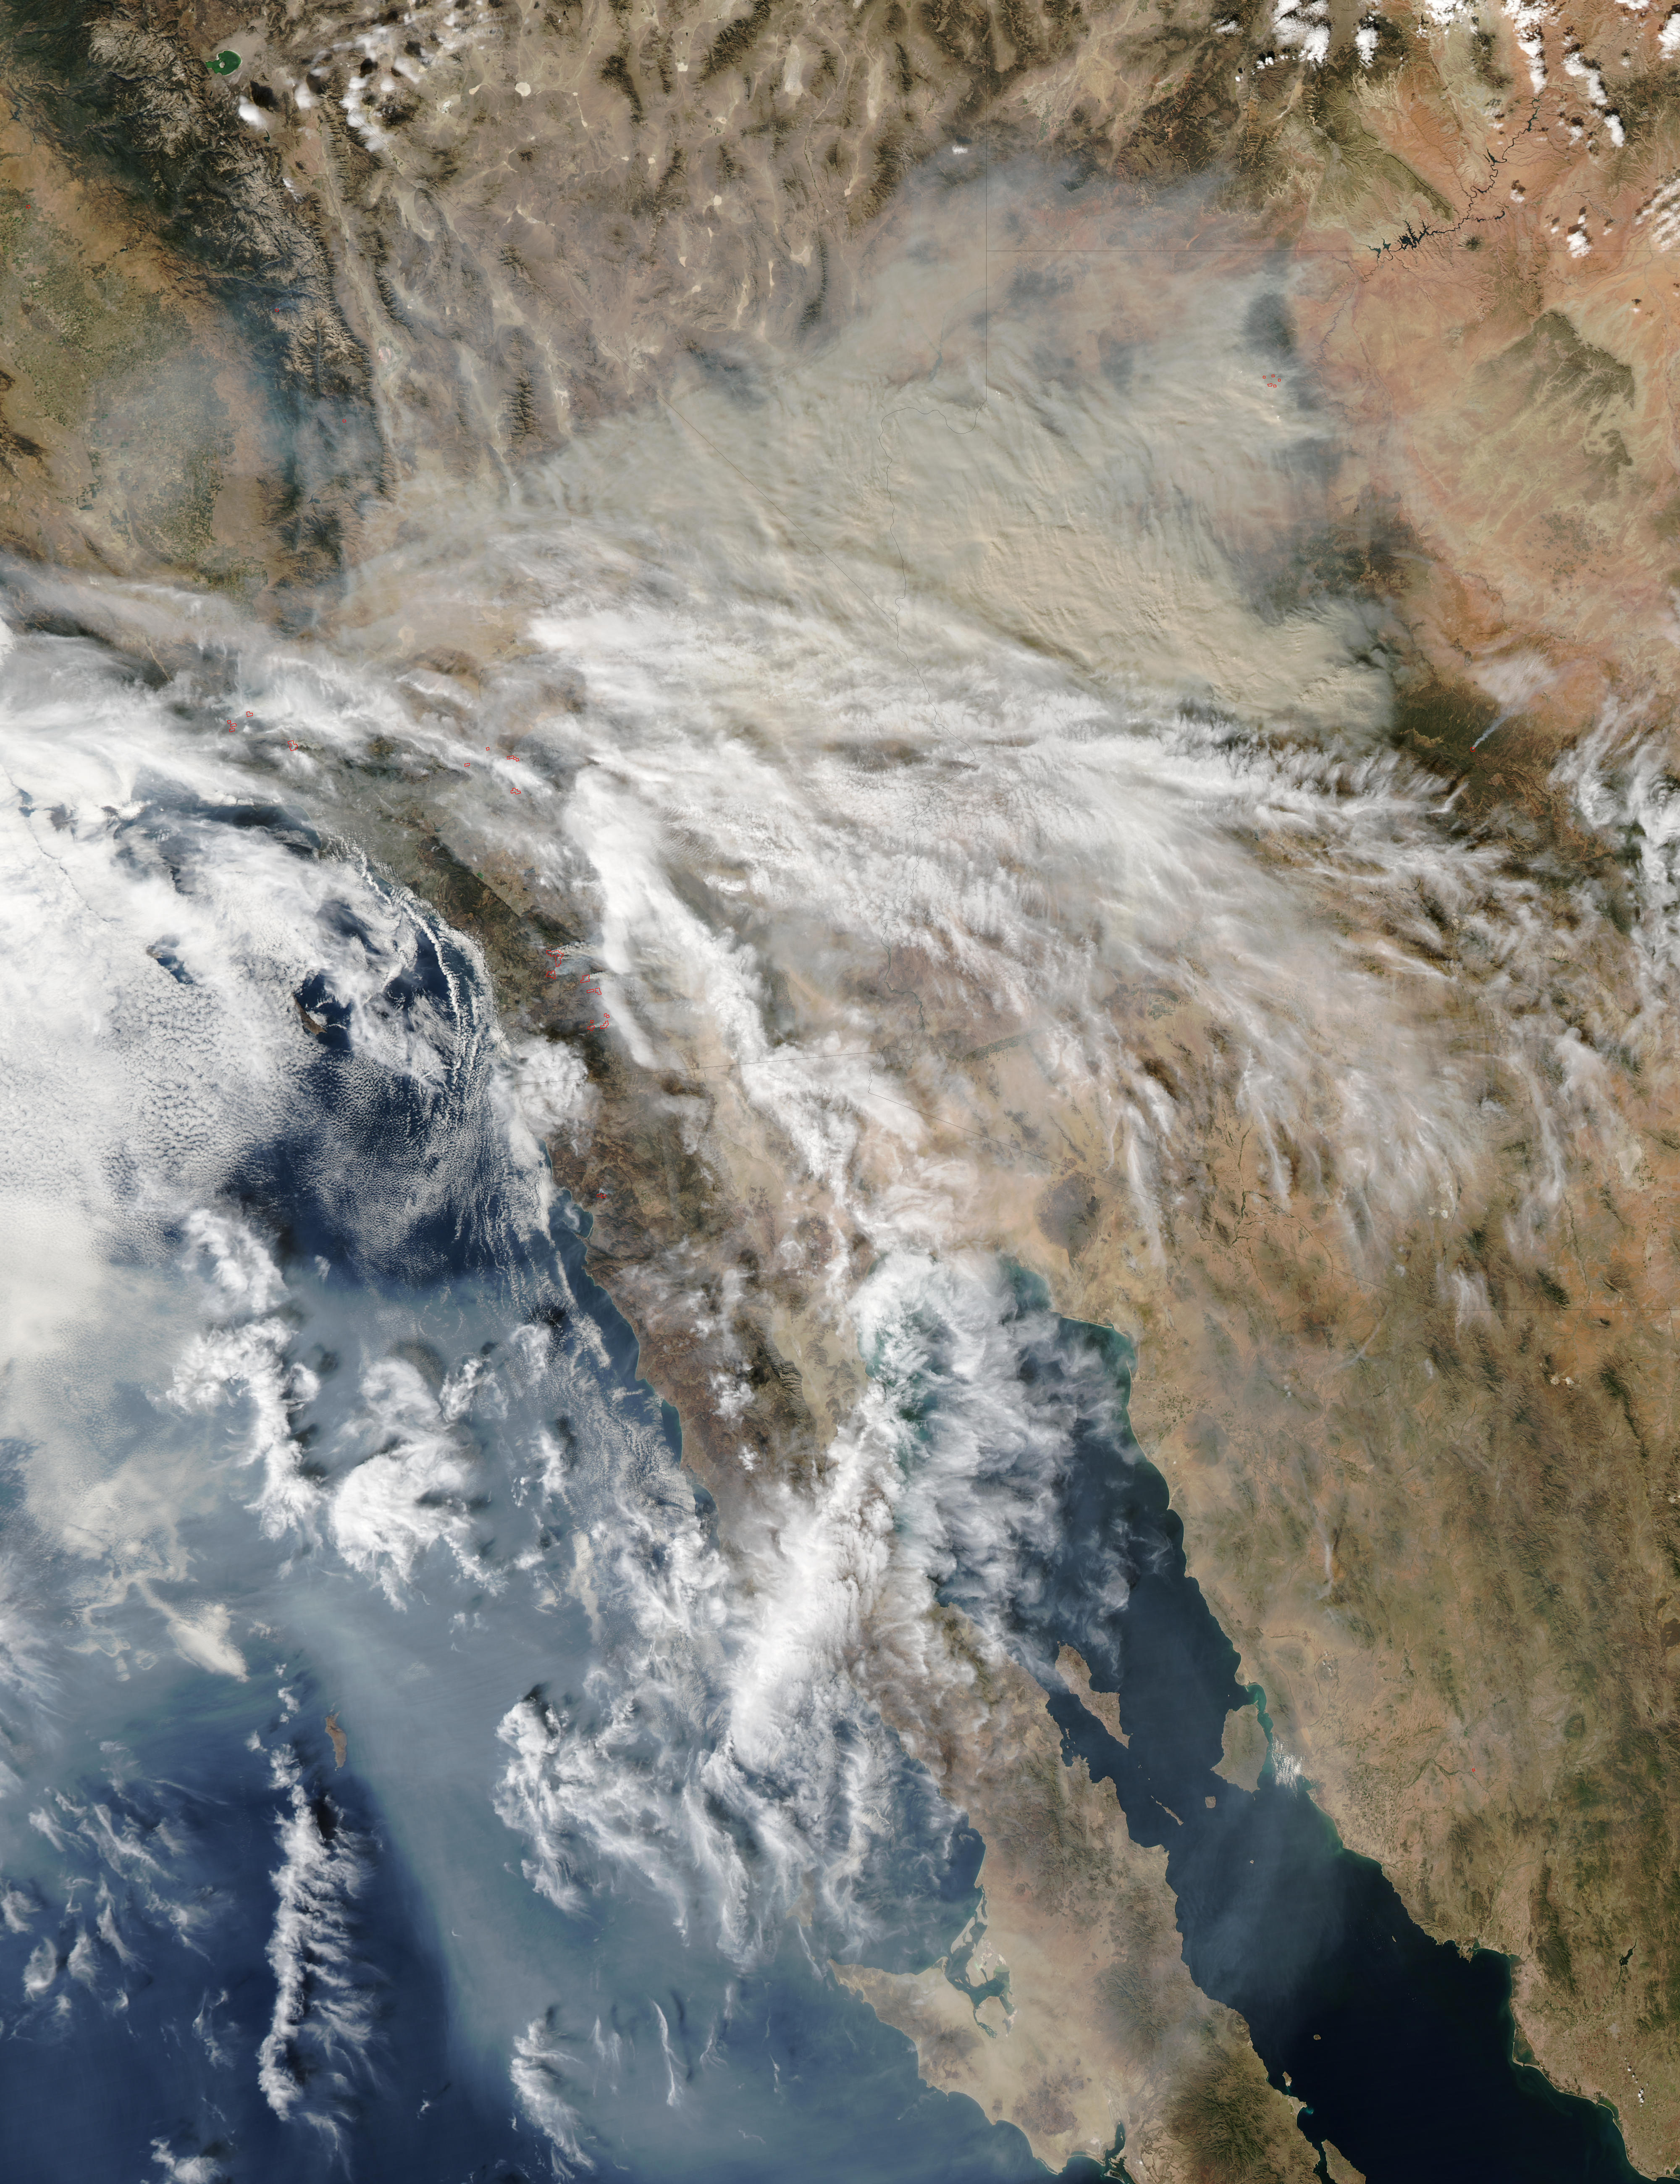 Smoke from California fires across Southwest United States